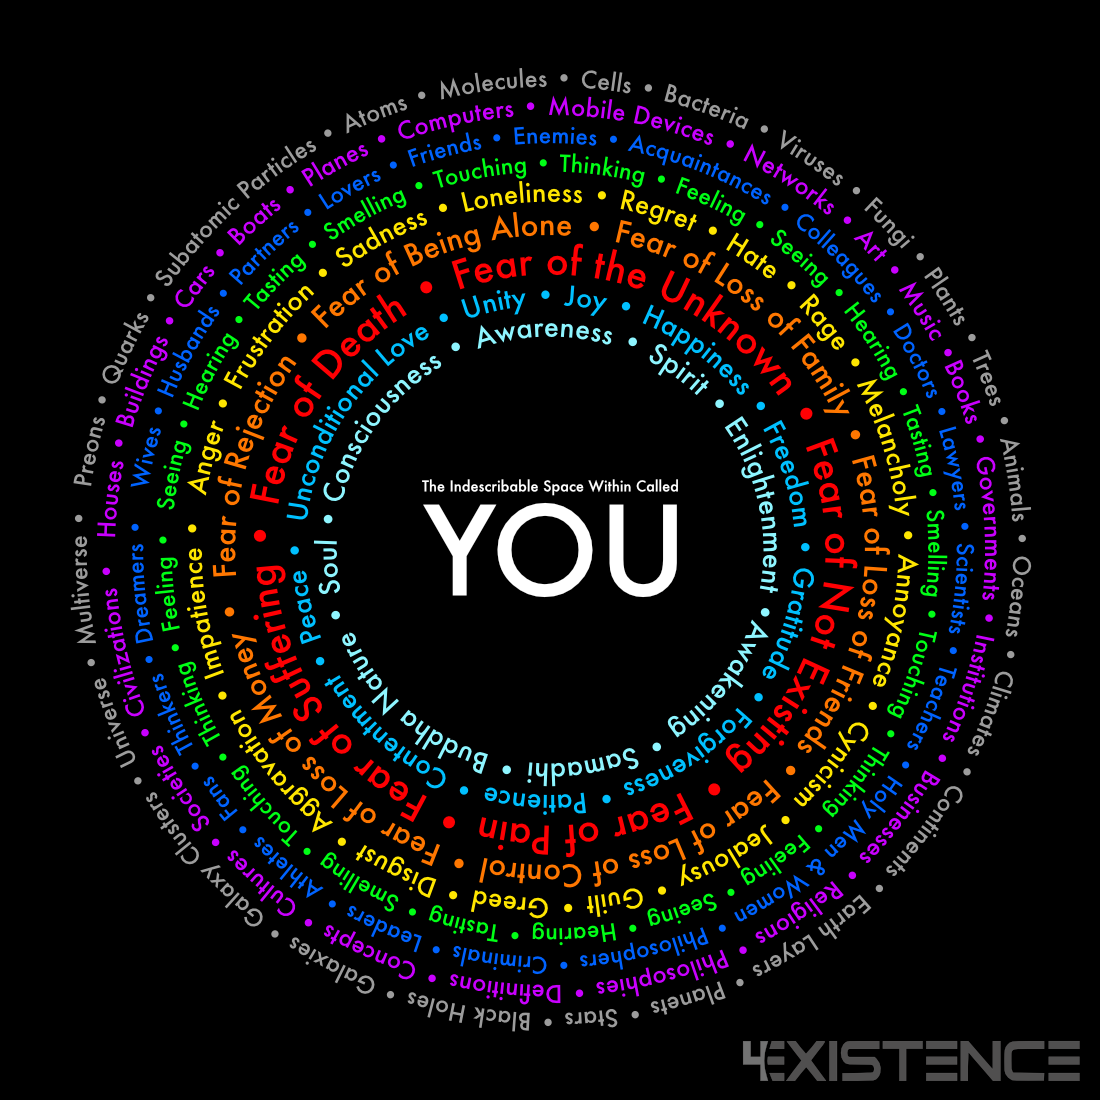 How to Find Your True Self | Self-Realization Infographic